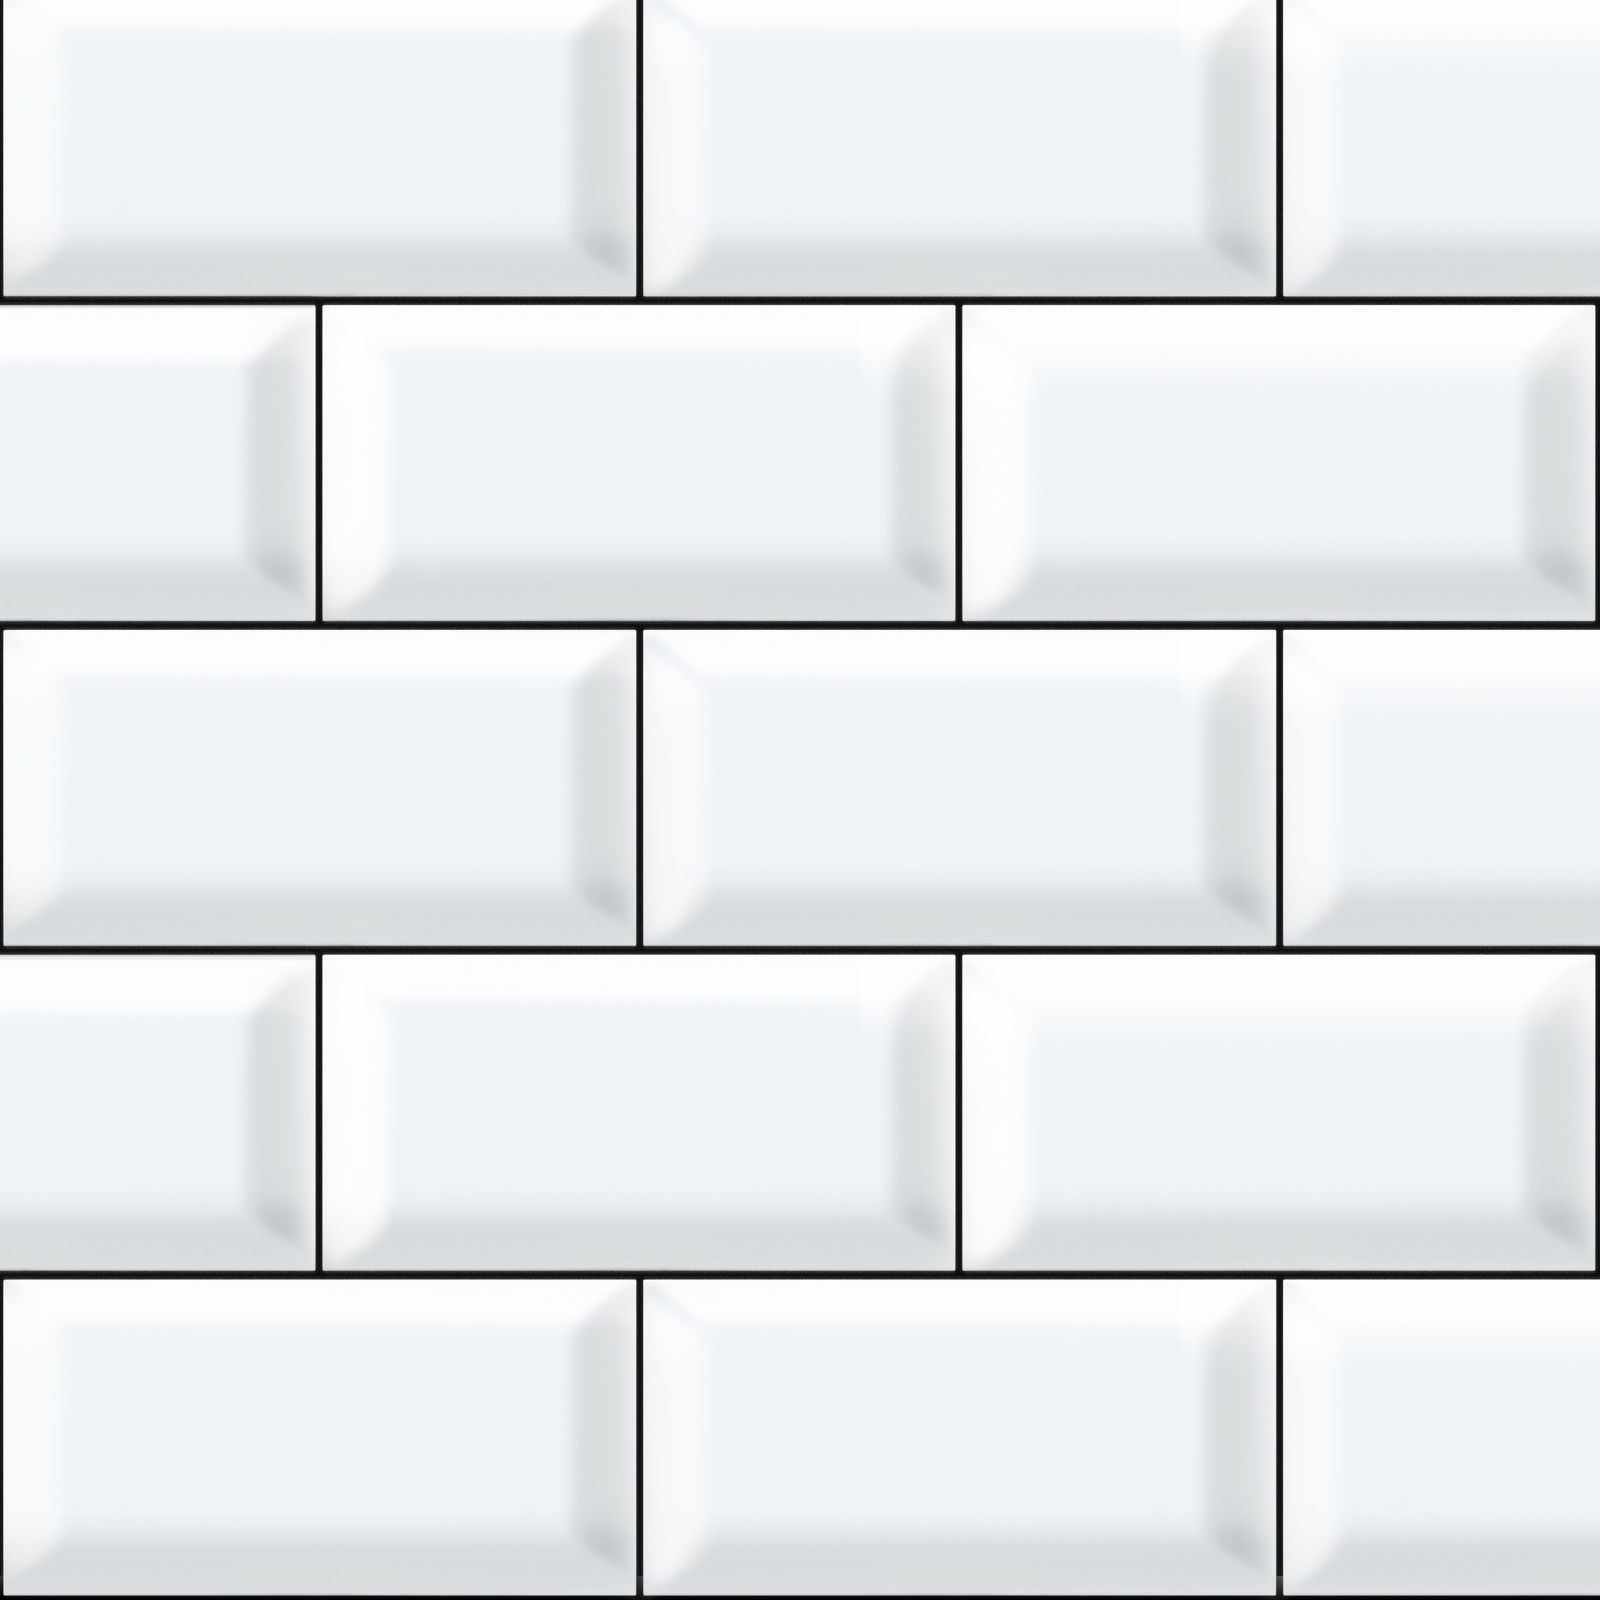 Black And White Kitchen Wall Tiles White Tiles With Black Grout Printed Home Sweet Home